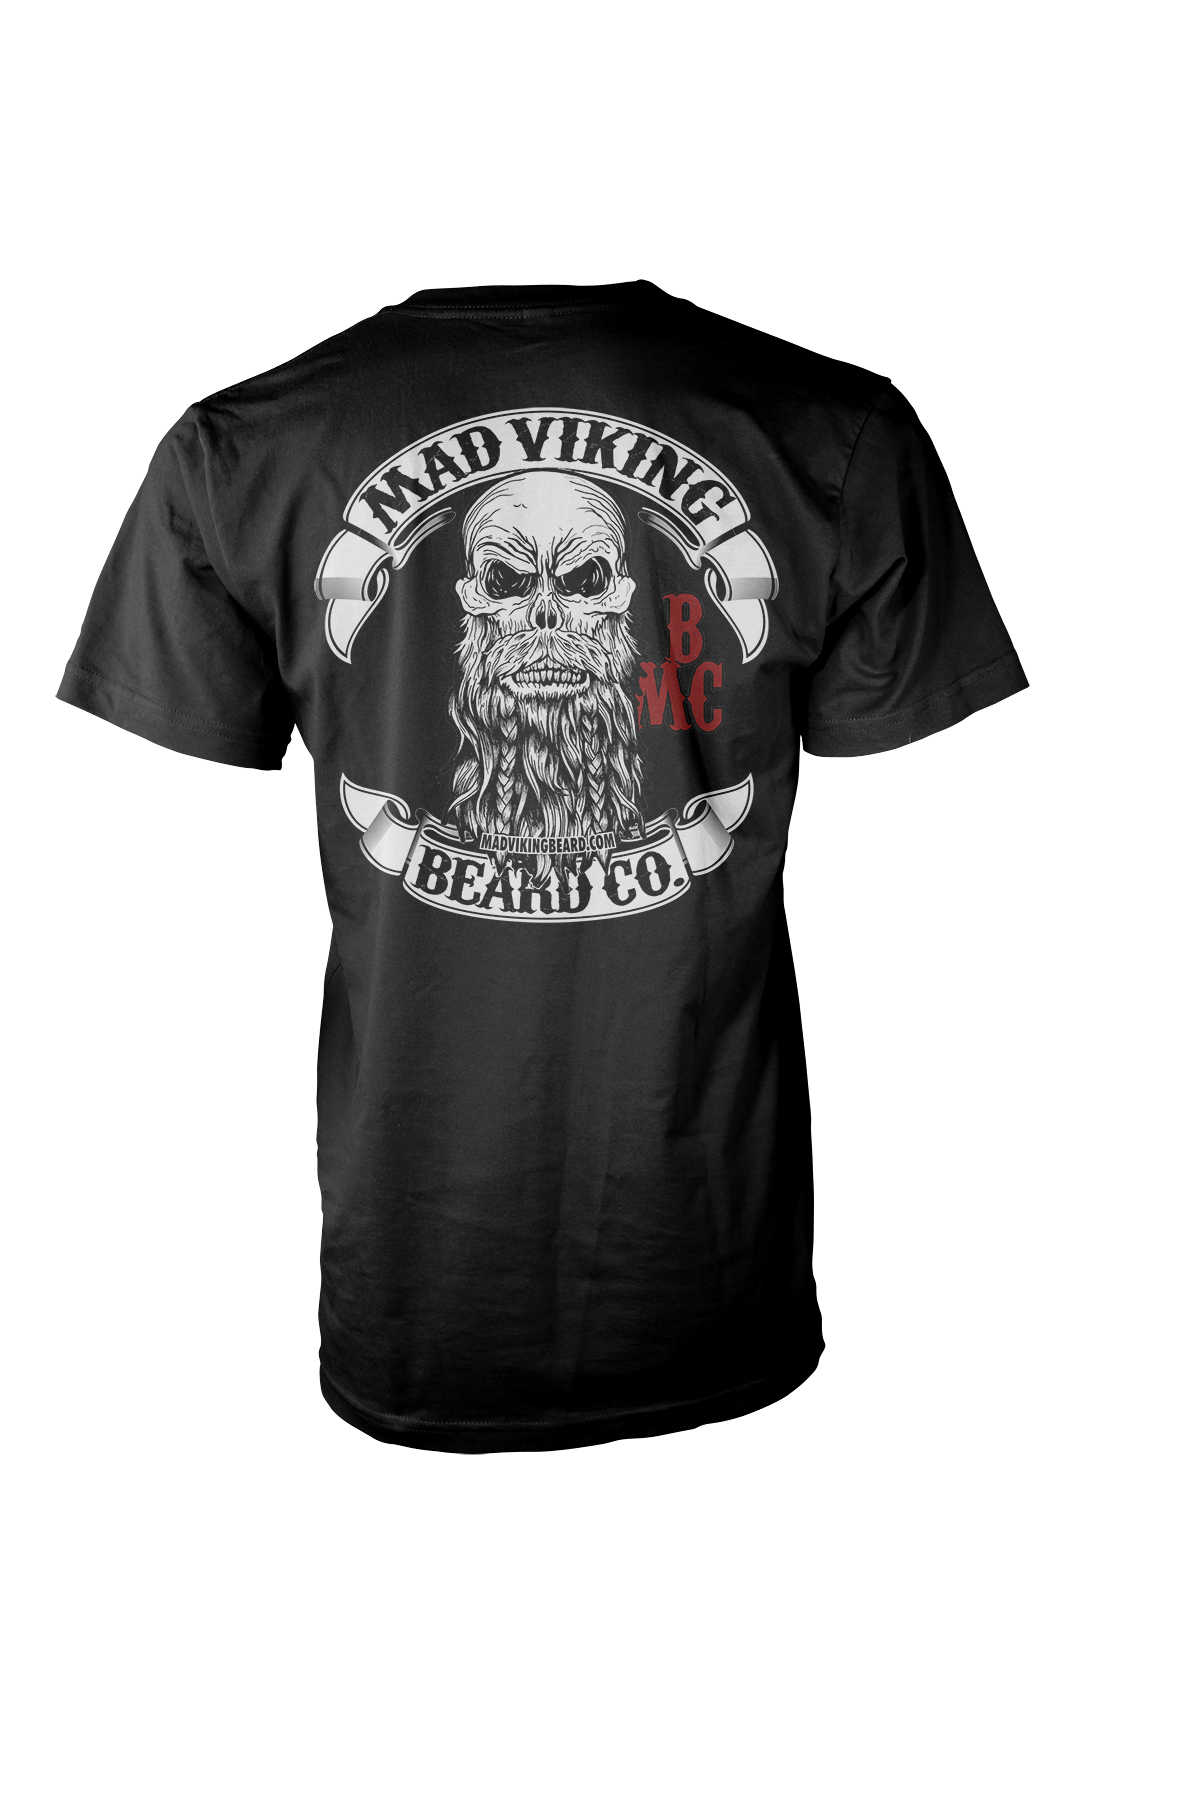 mad viking original tee  tshirts c 28 #10